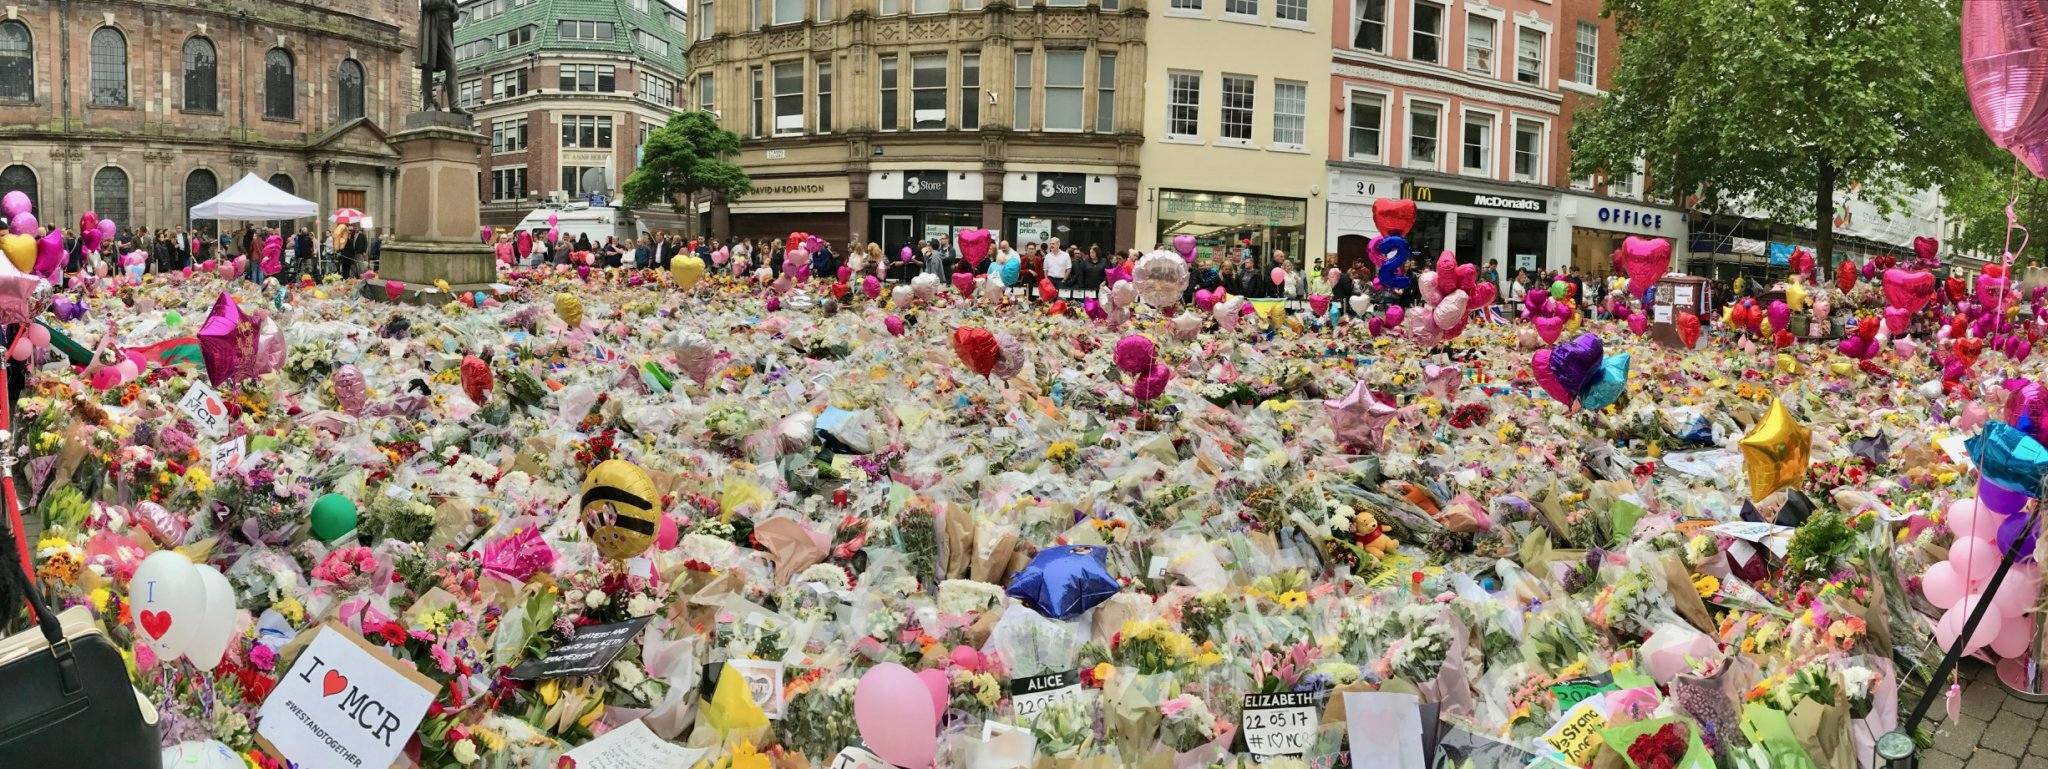 Tributes to Manchester Arena bombing victims in St Annes Square